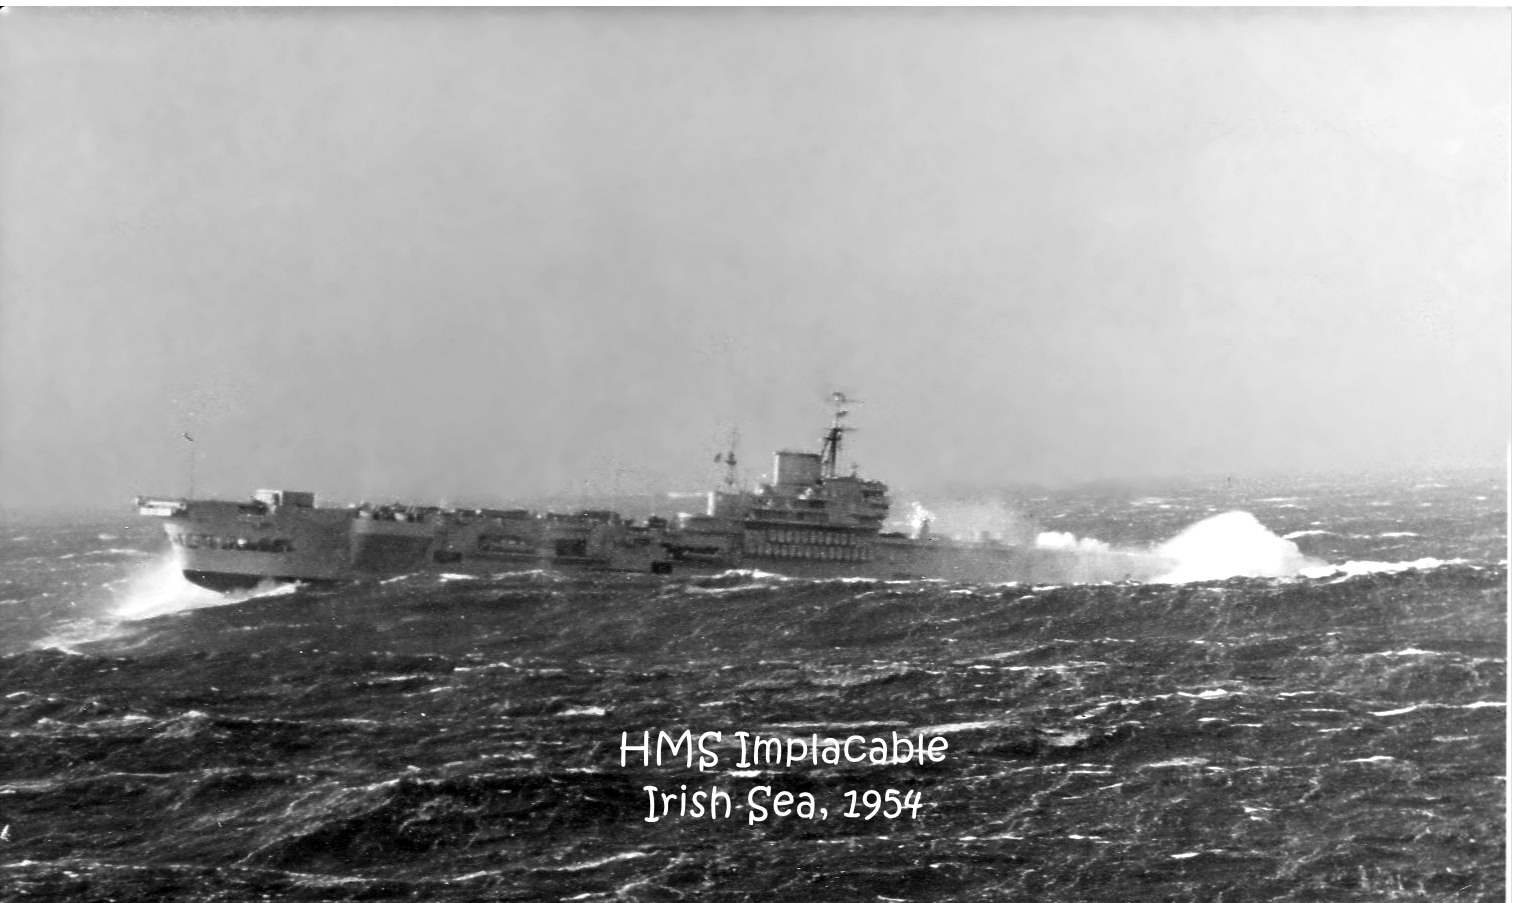 1954 HMS Implacable i